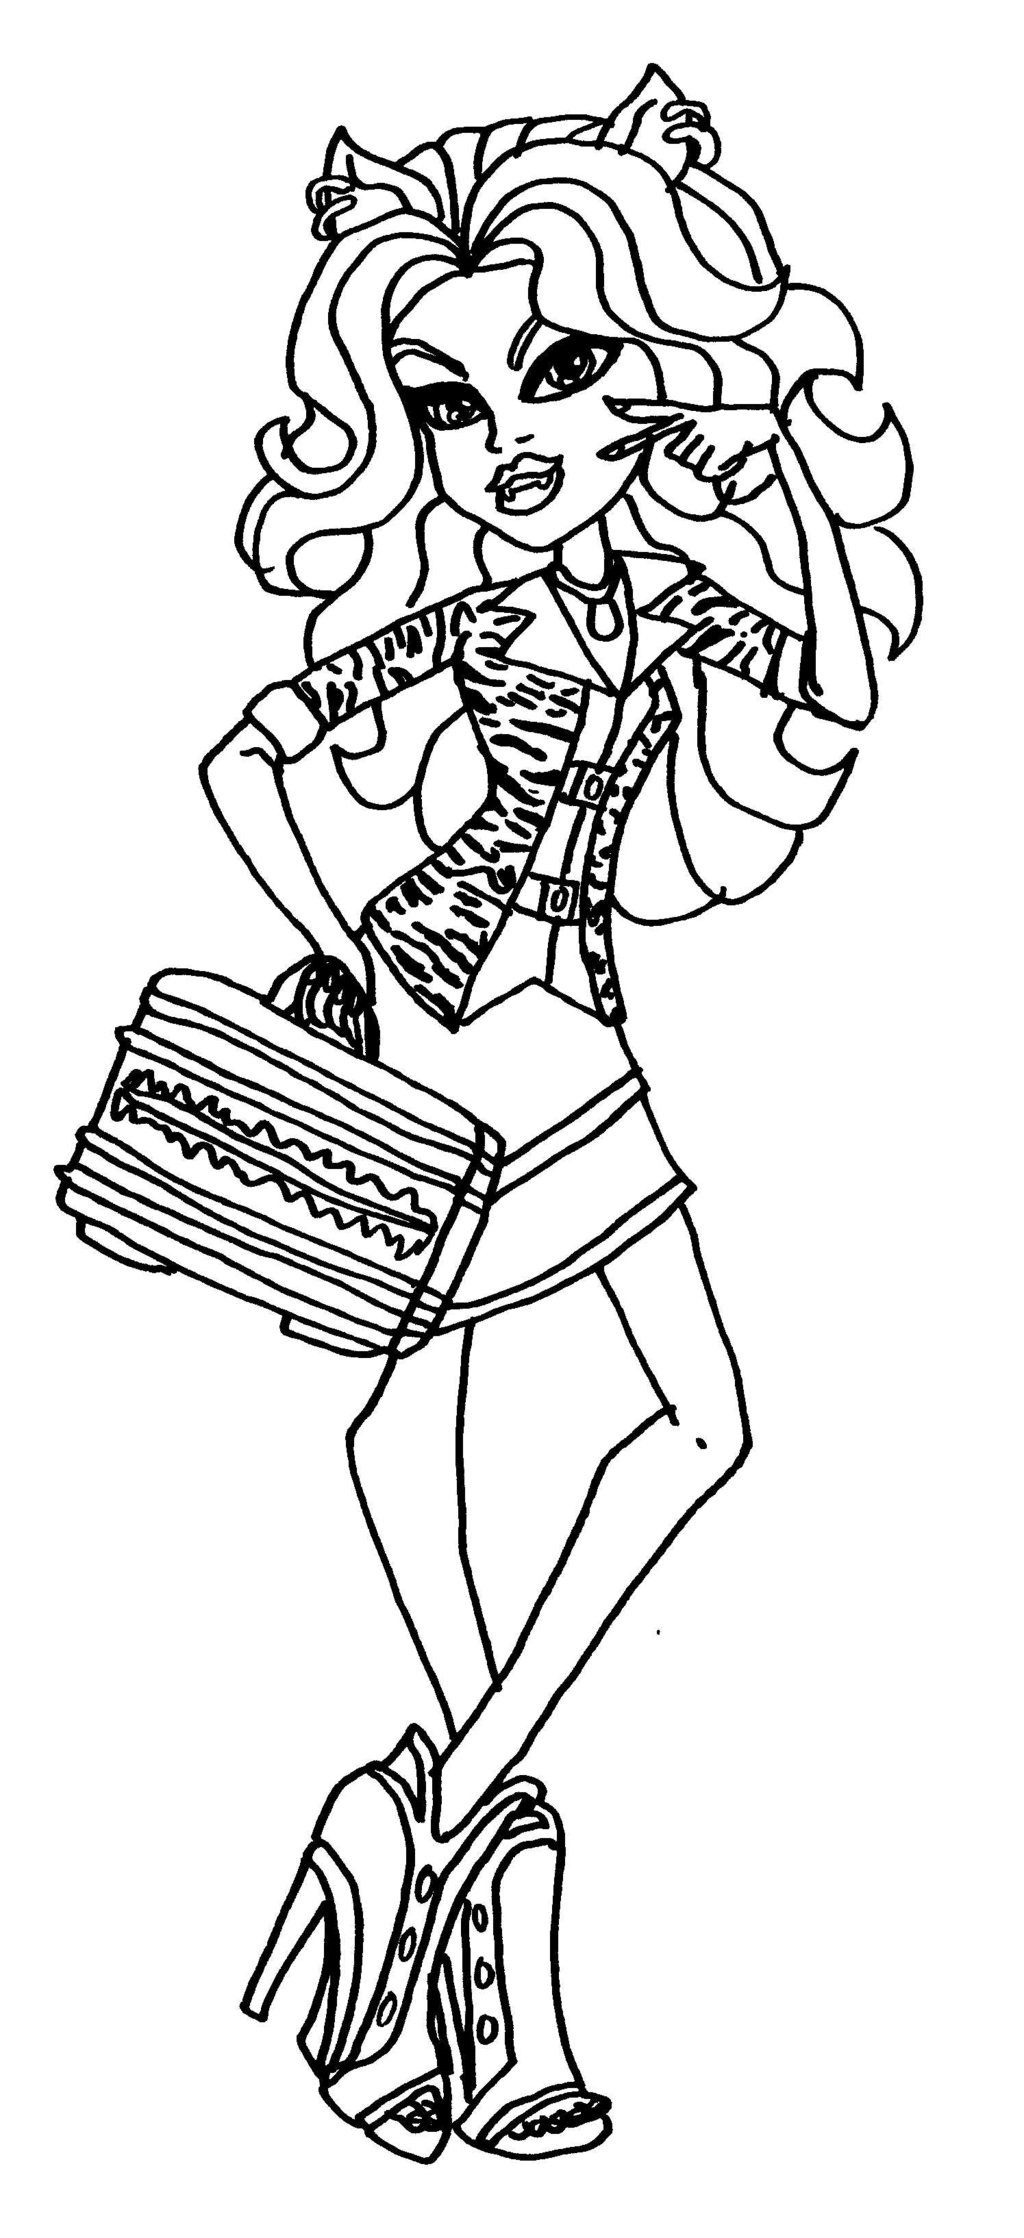 Monster High Coloring Monster High Party Kids Coloring Books Cool Coloring Pages